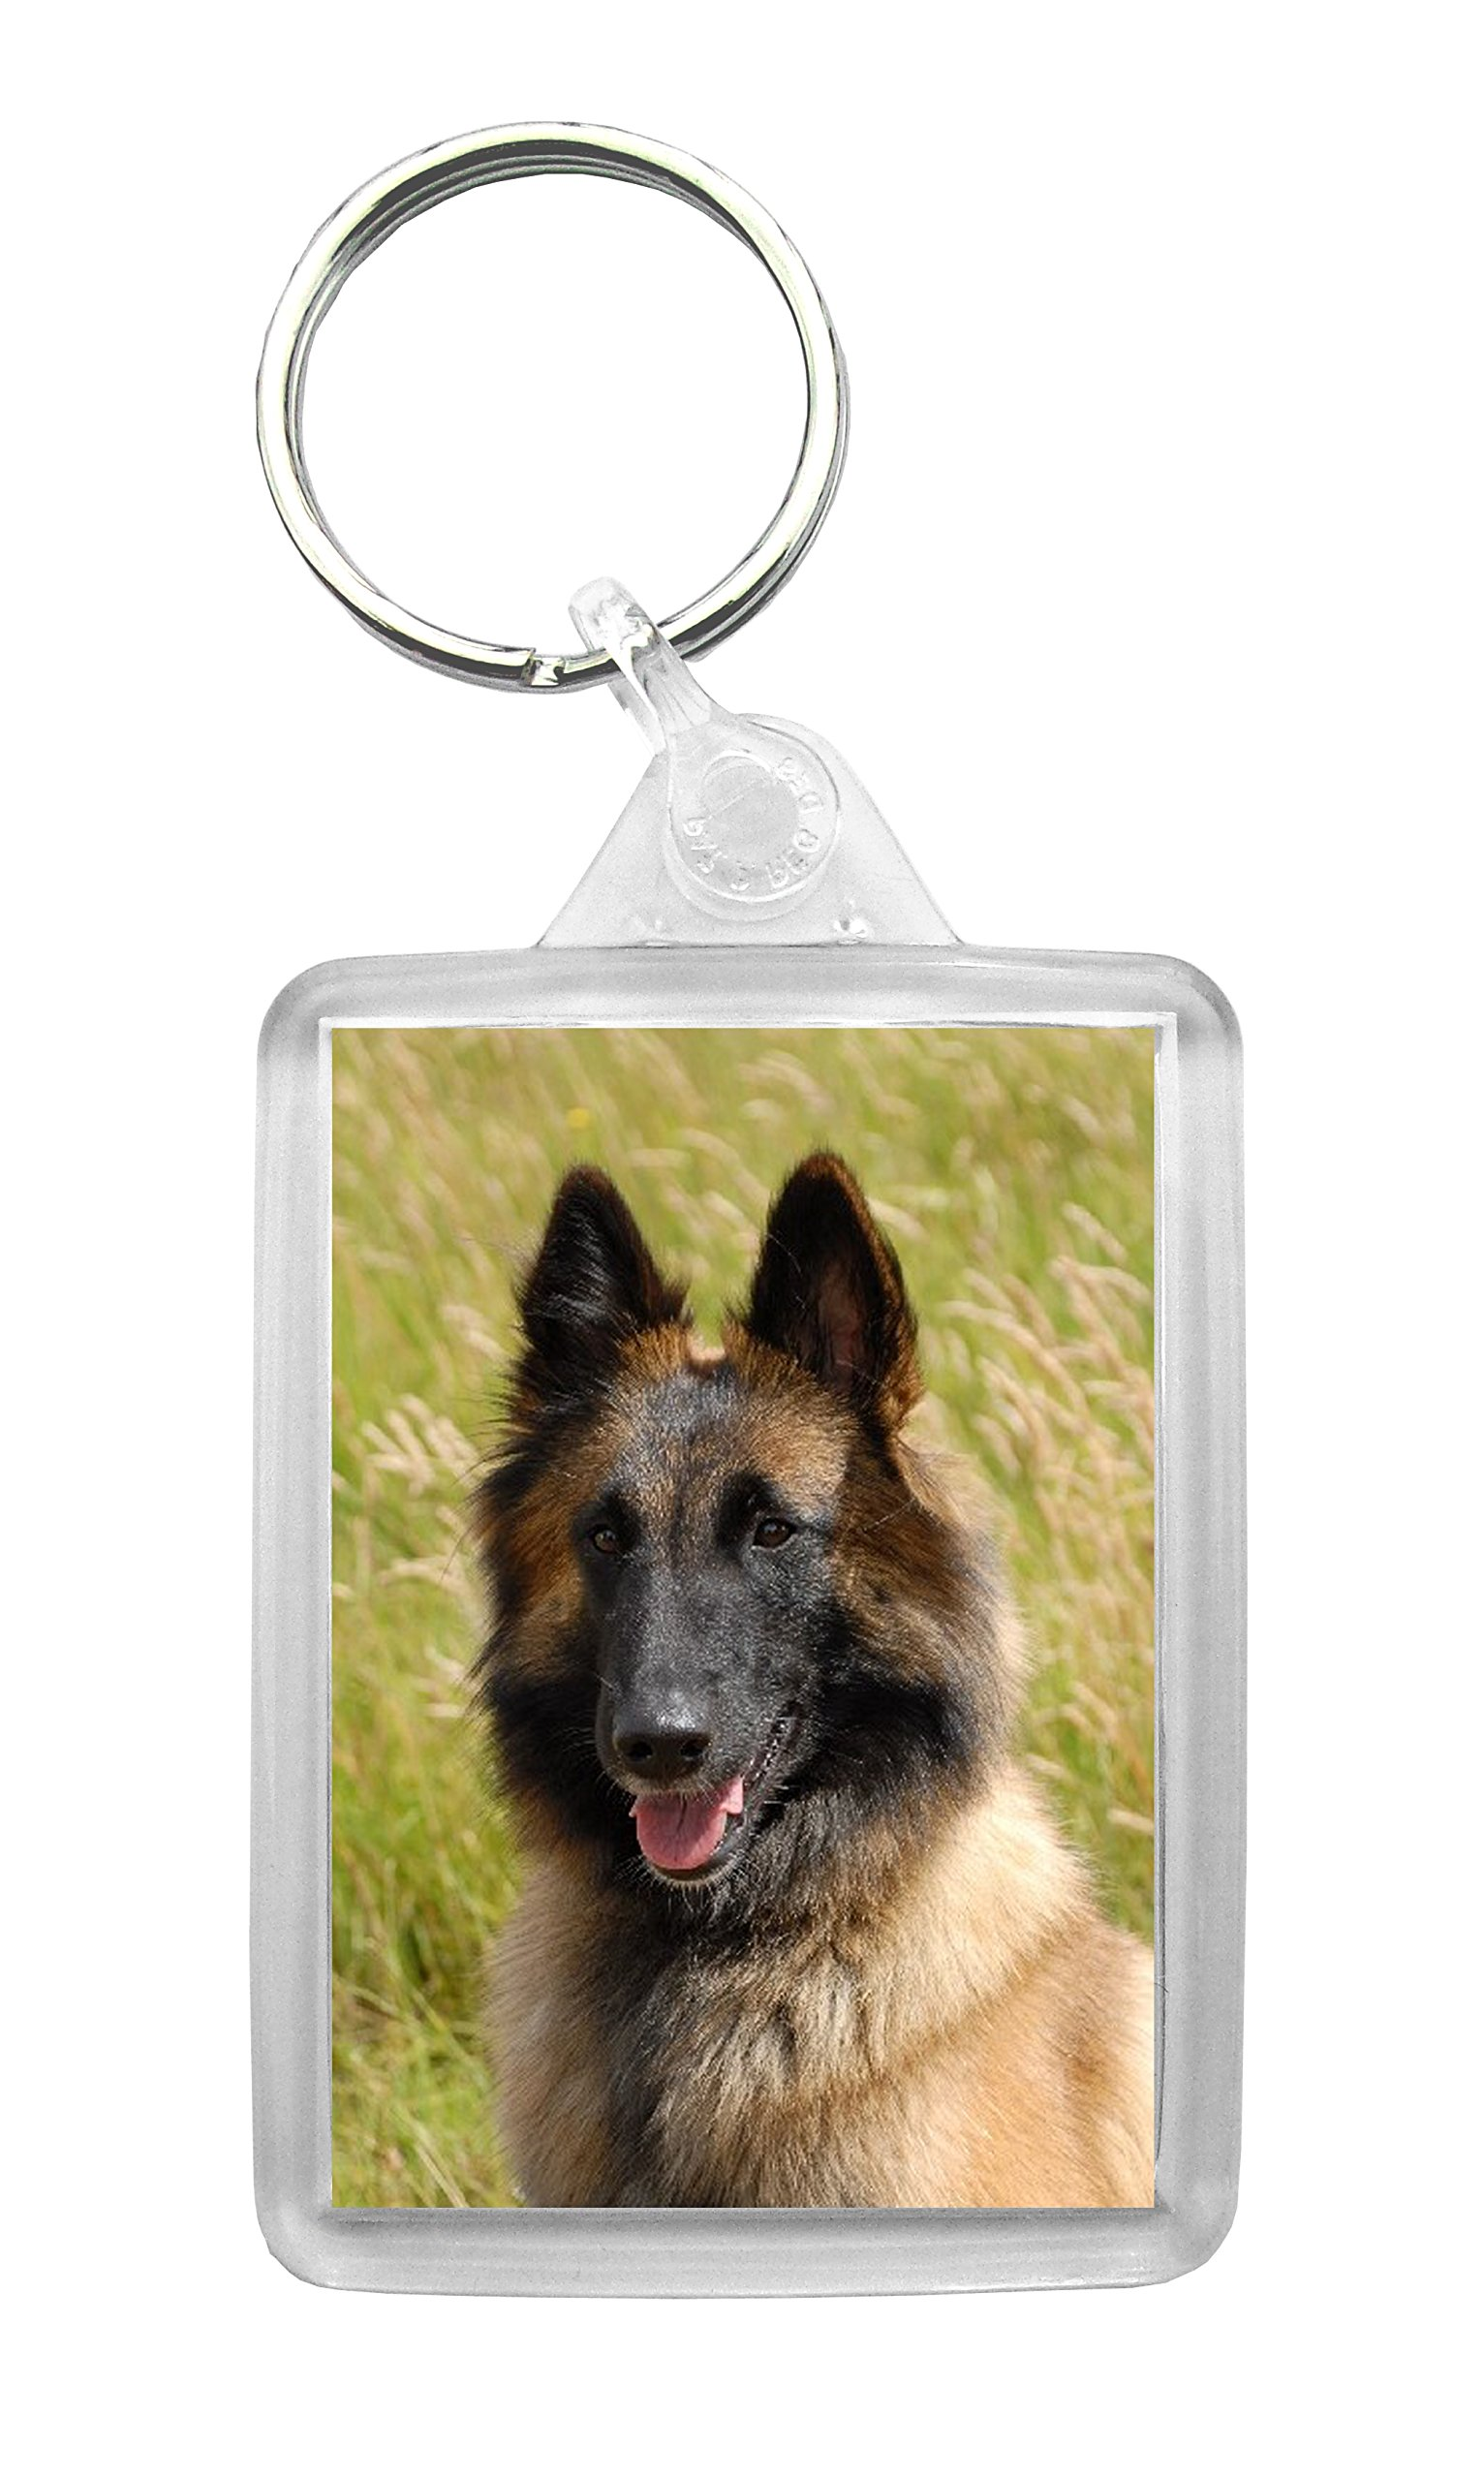 Belgian Shepherd Dog (Tervuren) Photo Keyring Key Chain Keyfob Lovely Novelty Gift Idea